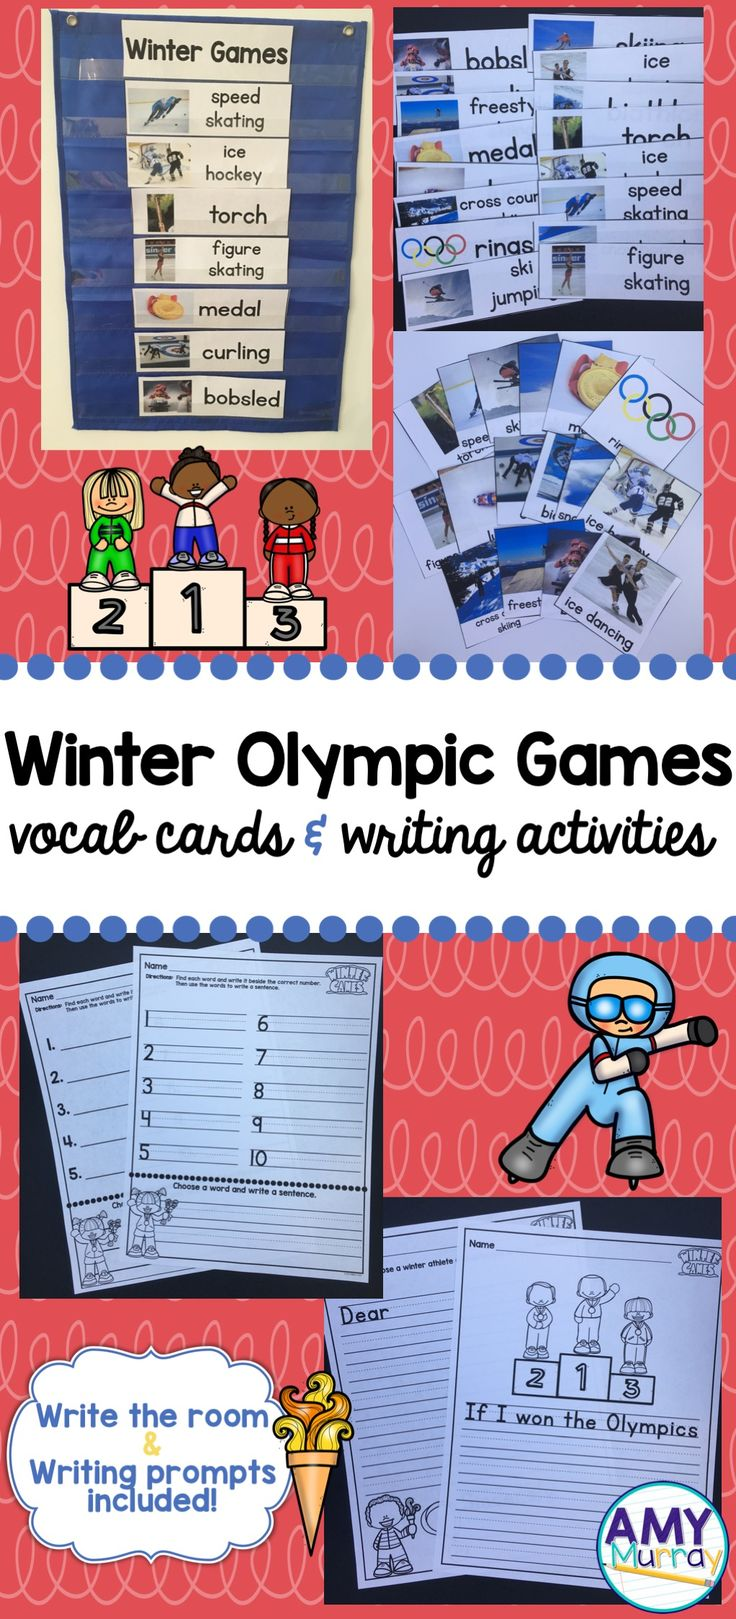 Winter Olympic Games 2018 - vocabulary/word wall cards with real photographs, write the room templates and writing prompts for young learners!